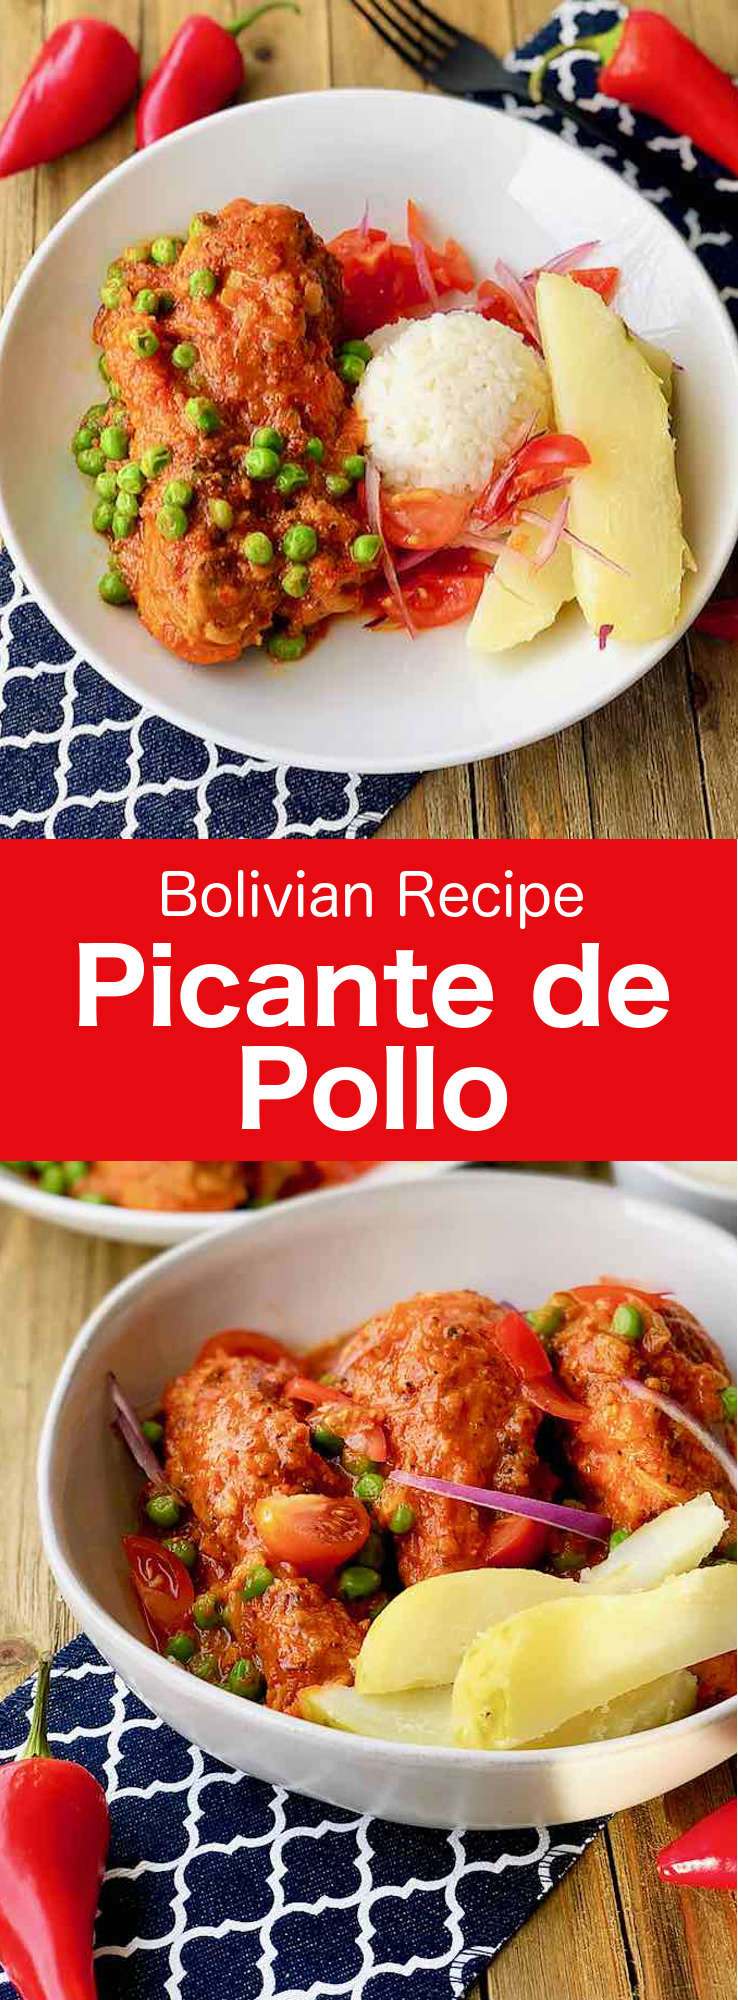 Picante de pollo is one of the most traditional Bolivian dishes. The main characteristic of this dish of chicken in sauce is its intense spiciness. #Bolivia #BolivianCuisine #BolivianFood #BolivianRecipe #WorldCuisine #196flavors